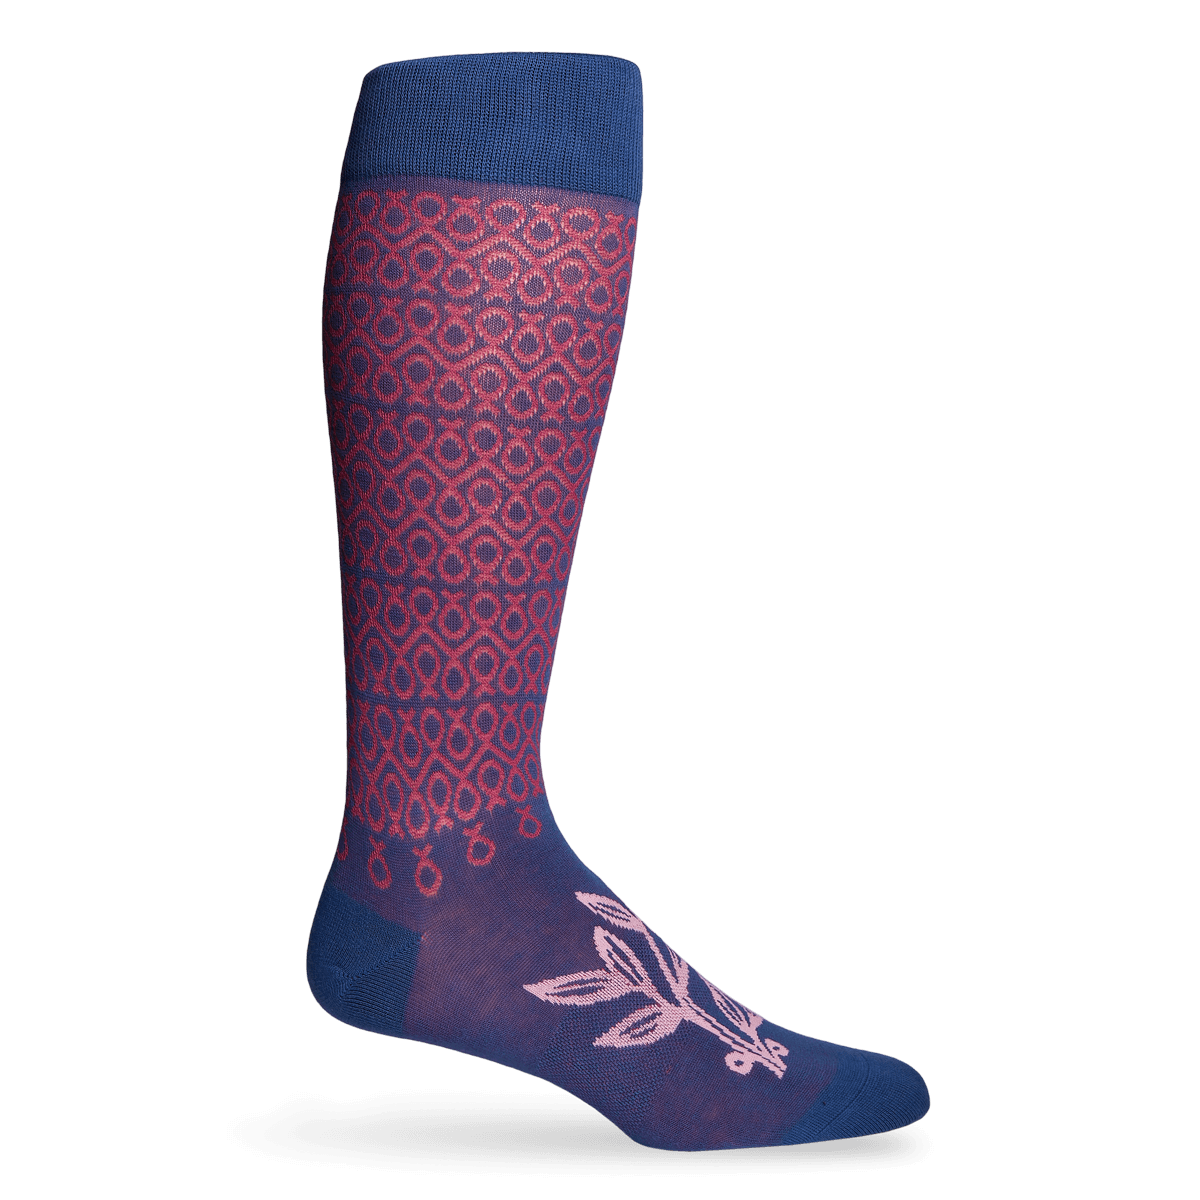 NBCF - Blue with Dark Pink Connected Ribbons